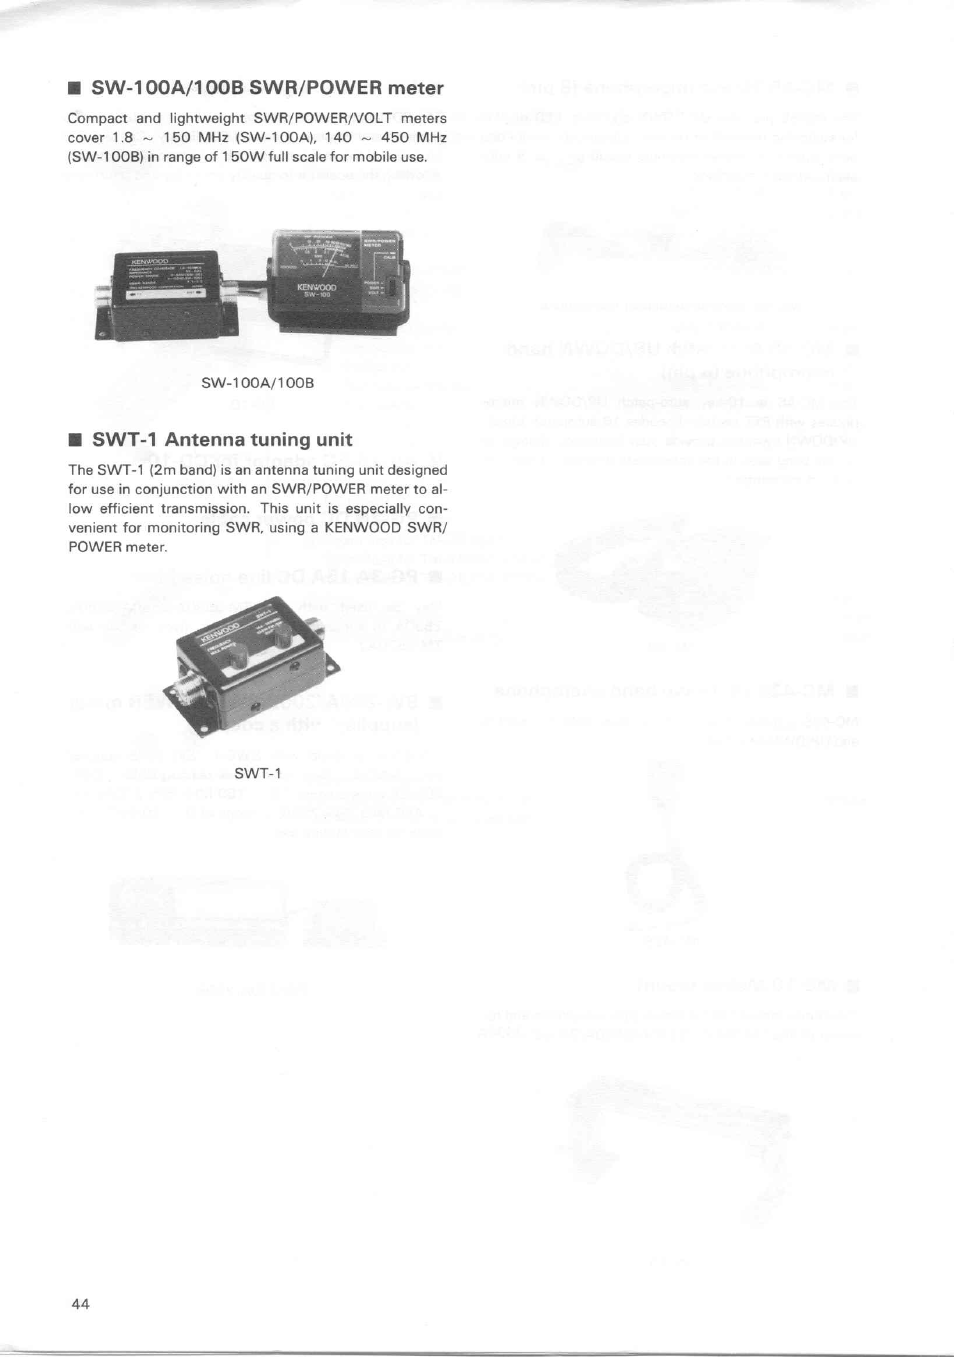 Sw-100a/100bswr/power meter, Swt-1 antenna tuning unit | Kenwood TM-3530A  User Manual | Page 44 / 47